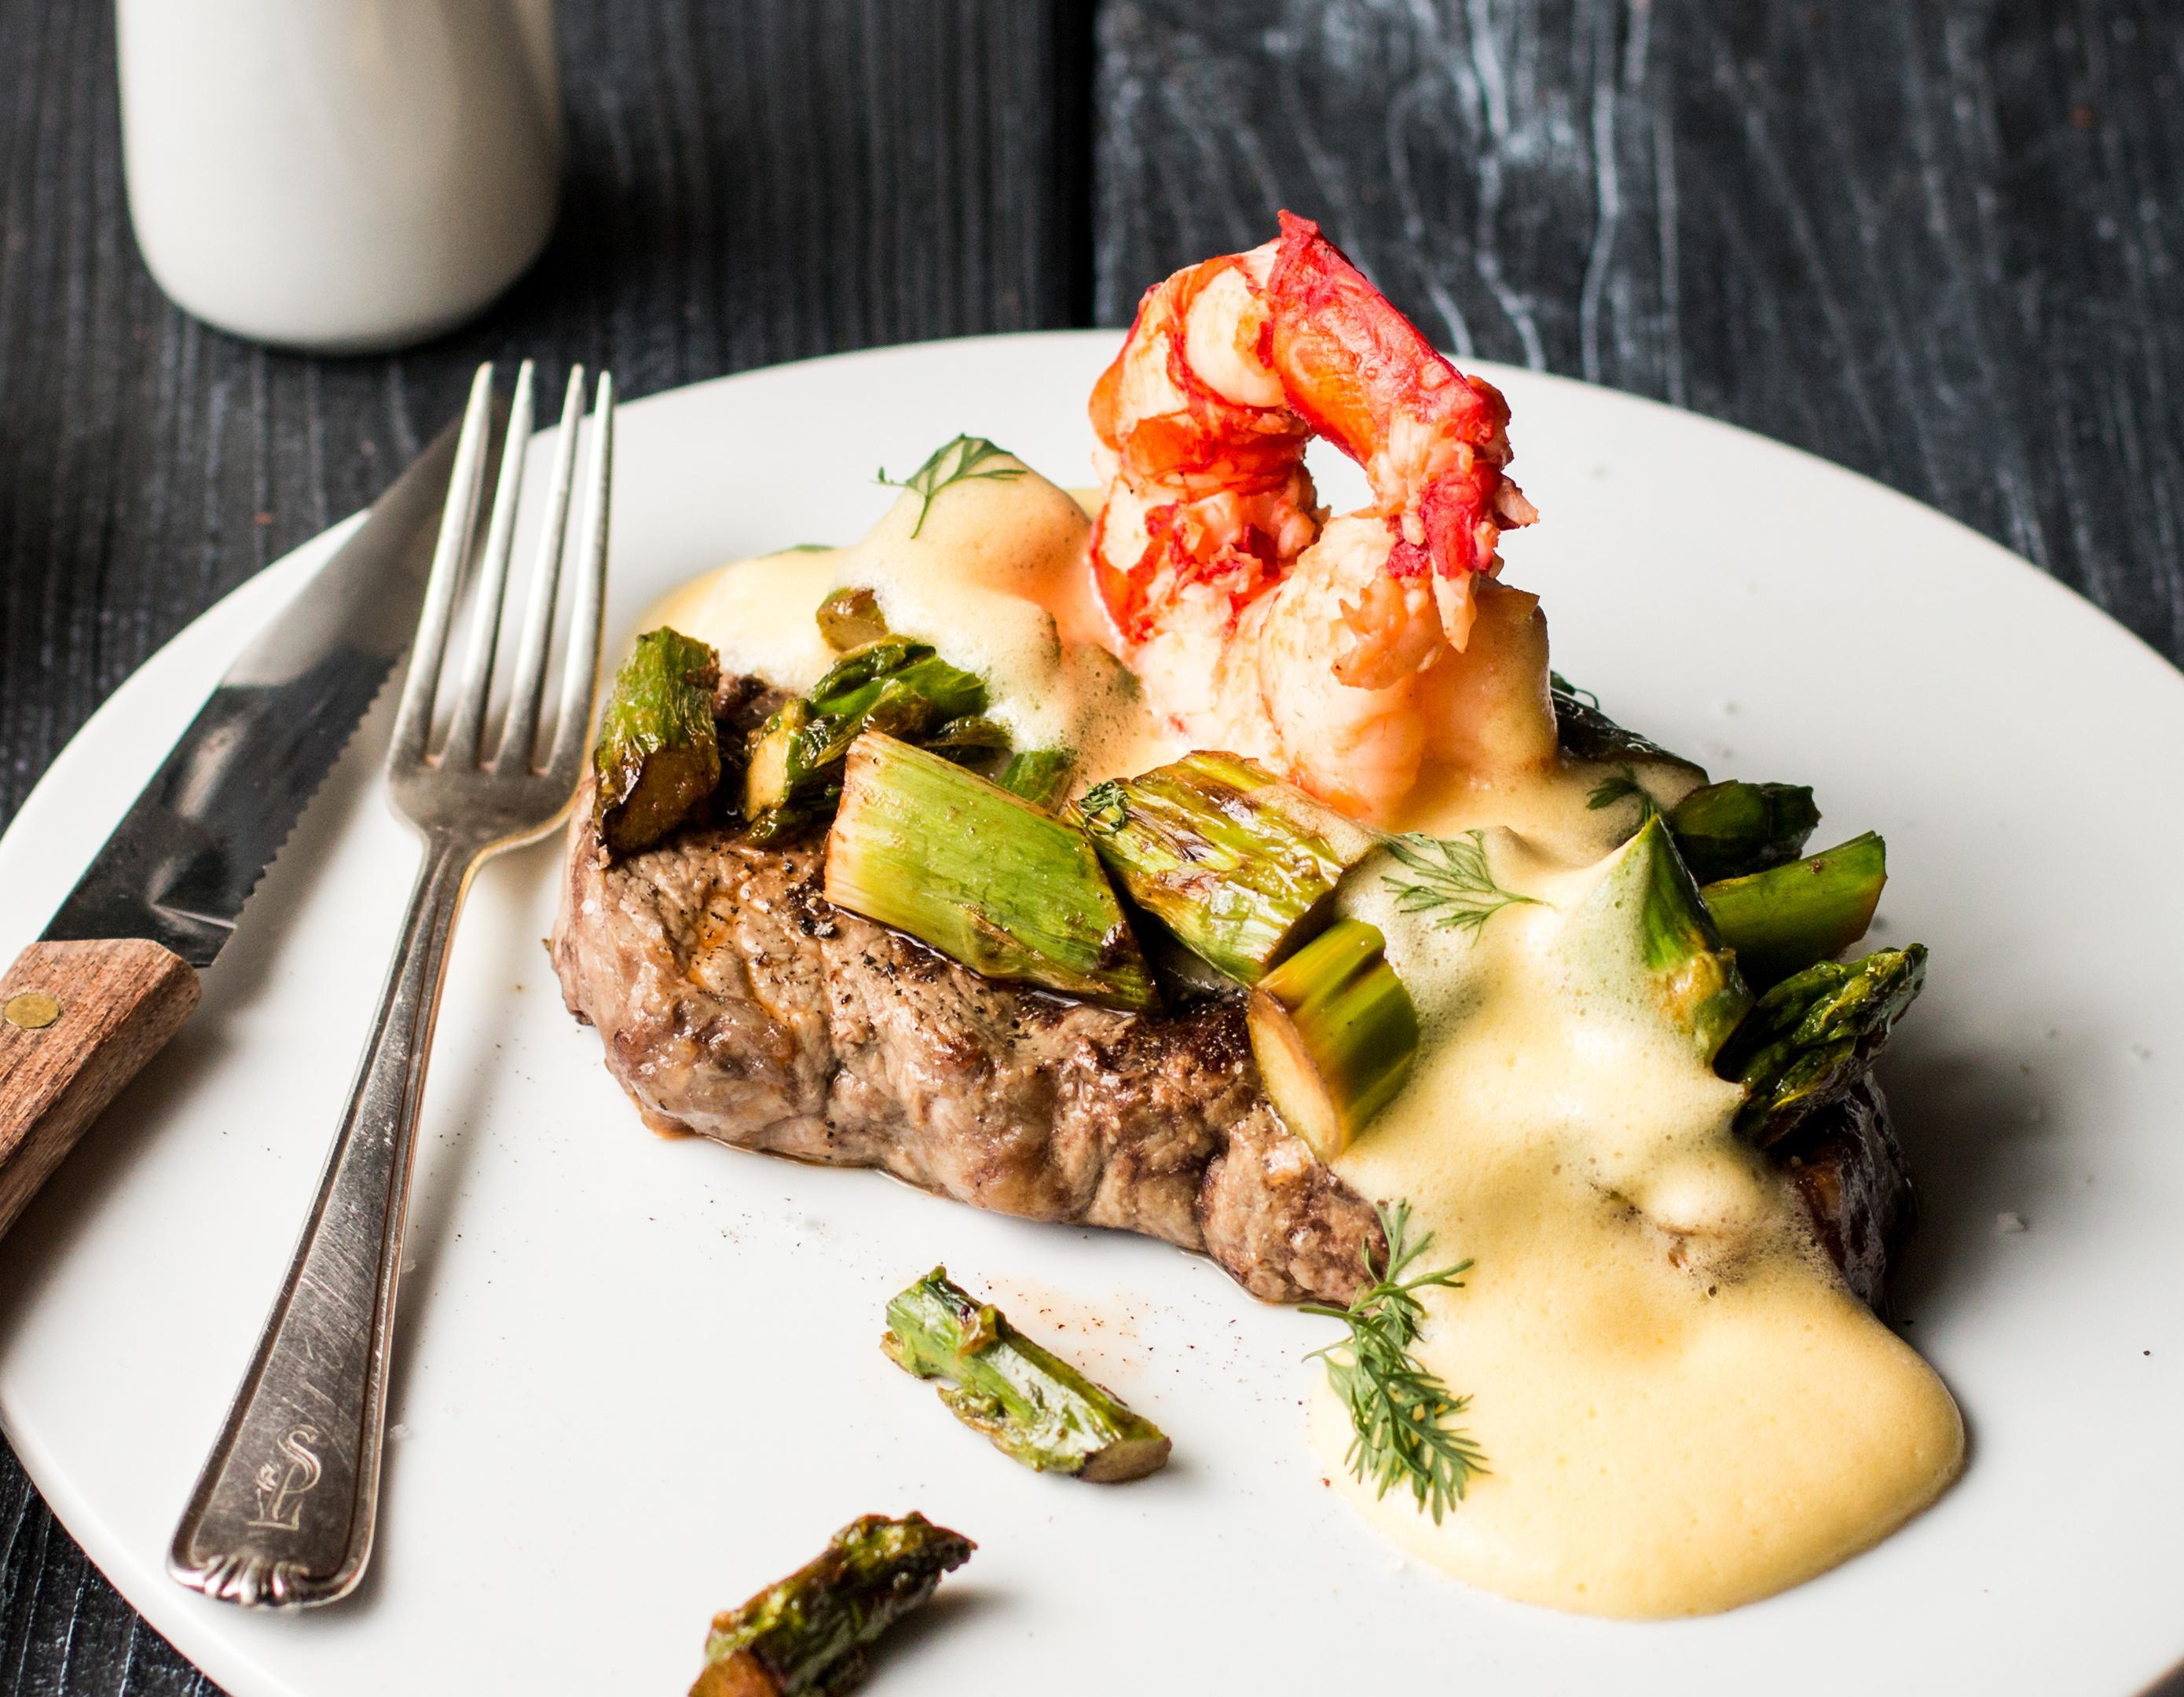 Surf and Turf: Rote Riesengarnele de luxe